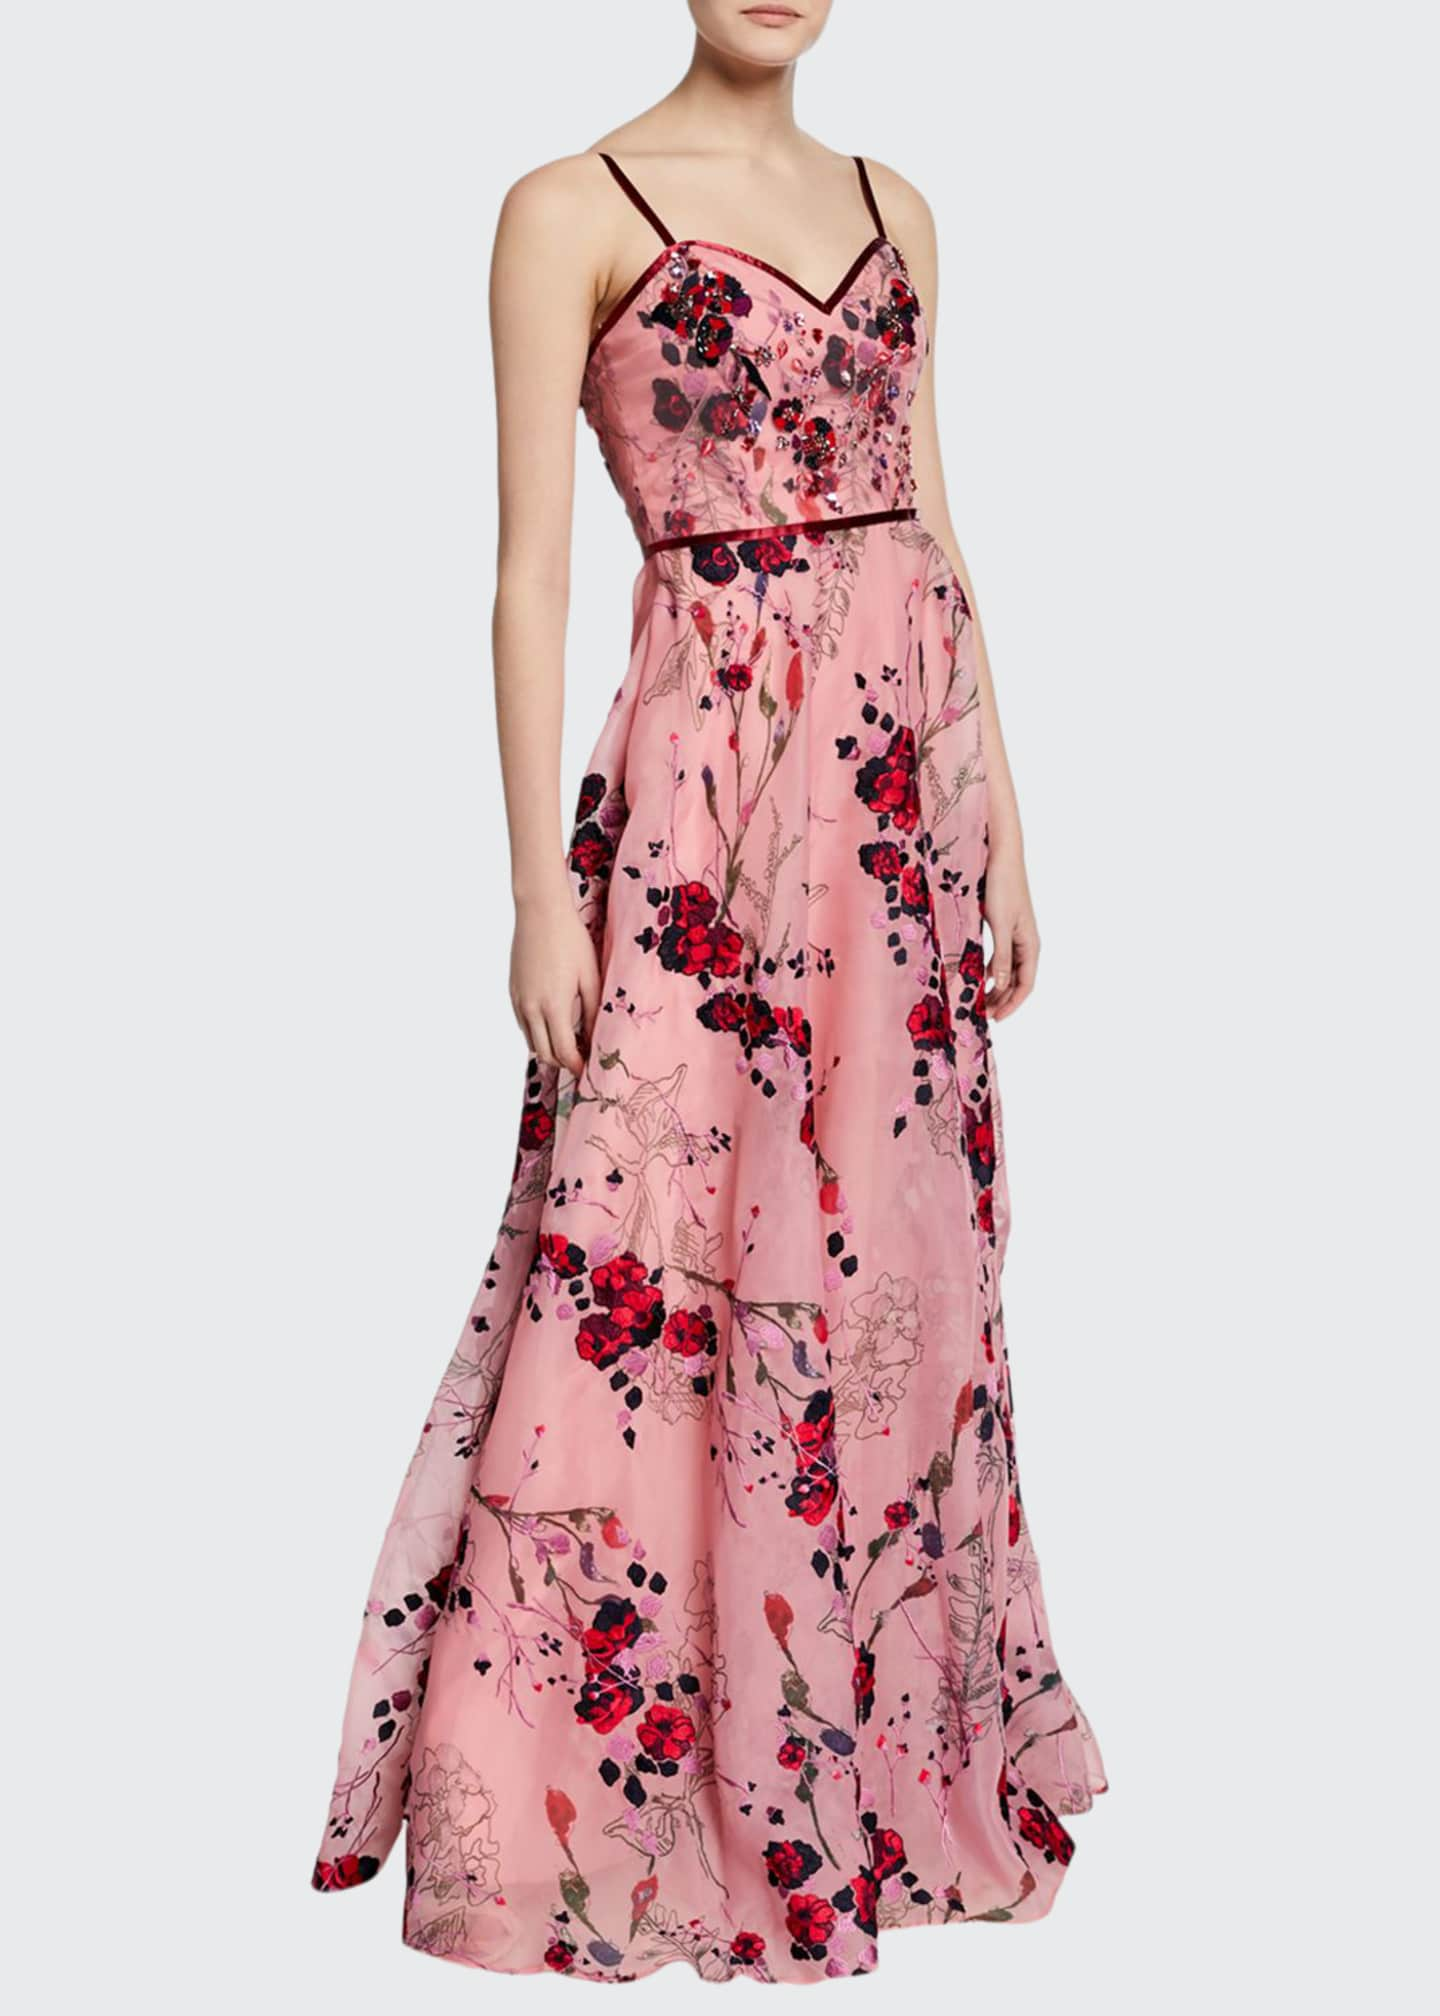 Marchesa Notte Printed Floral-Embroidered Sleeveless Organza Gown